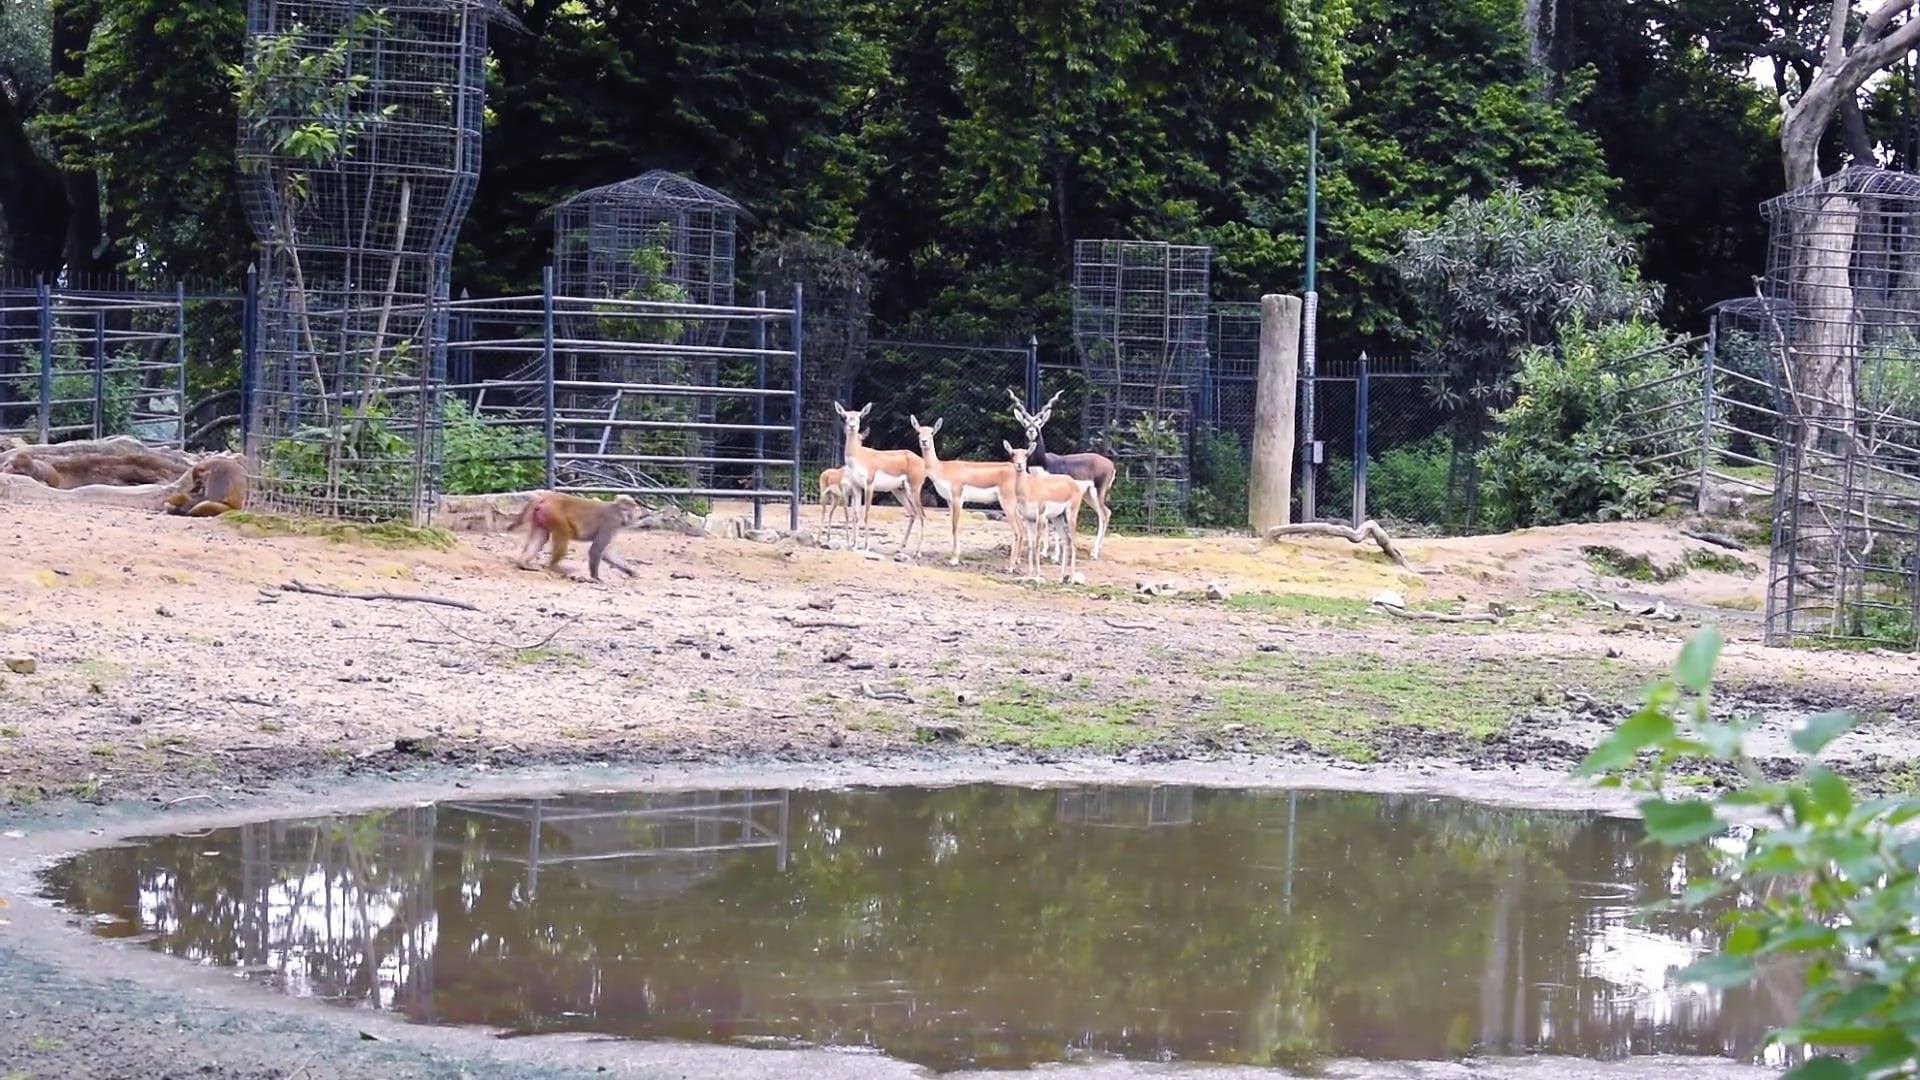 Group Of Animals In A Wildlife Park